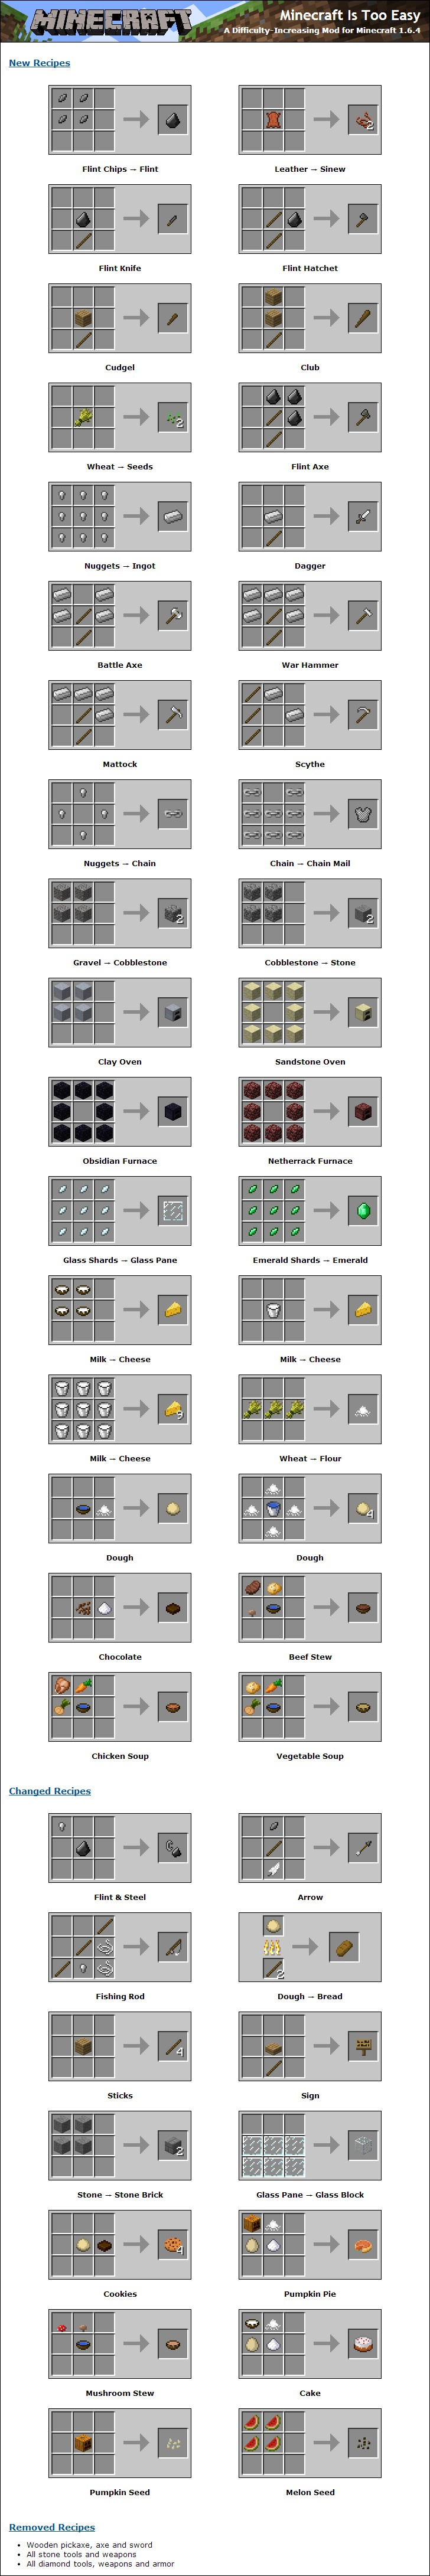 4f16d  Minecraft Is Too Easy Mod 2 Minecraft Is Too Easy Recipes